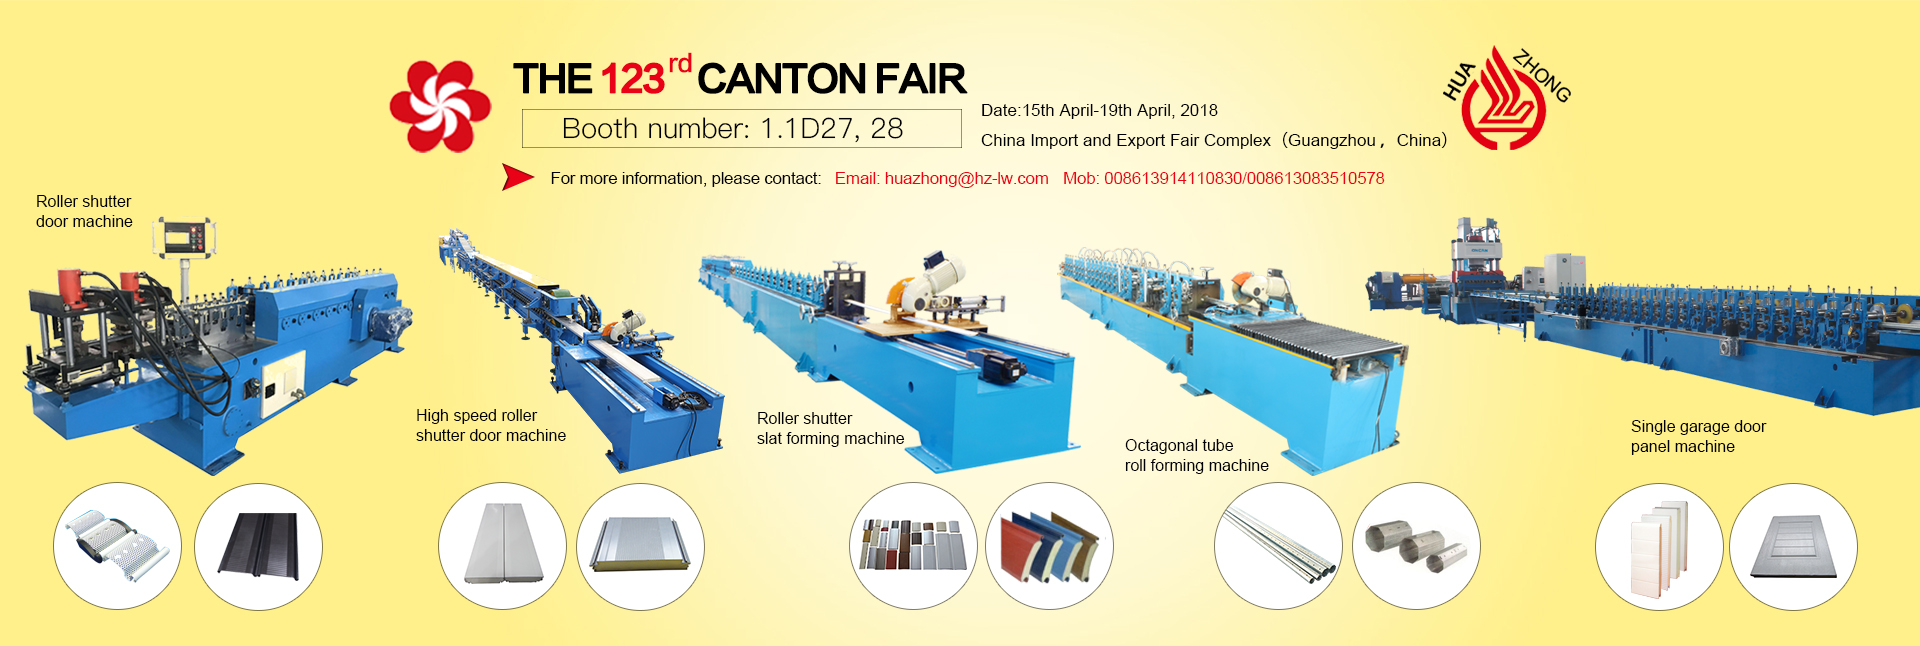 2018.4the 123th Canton Fair